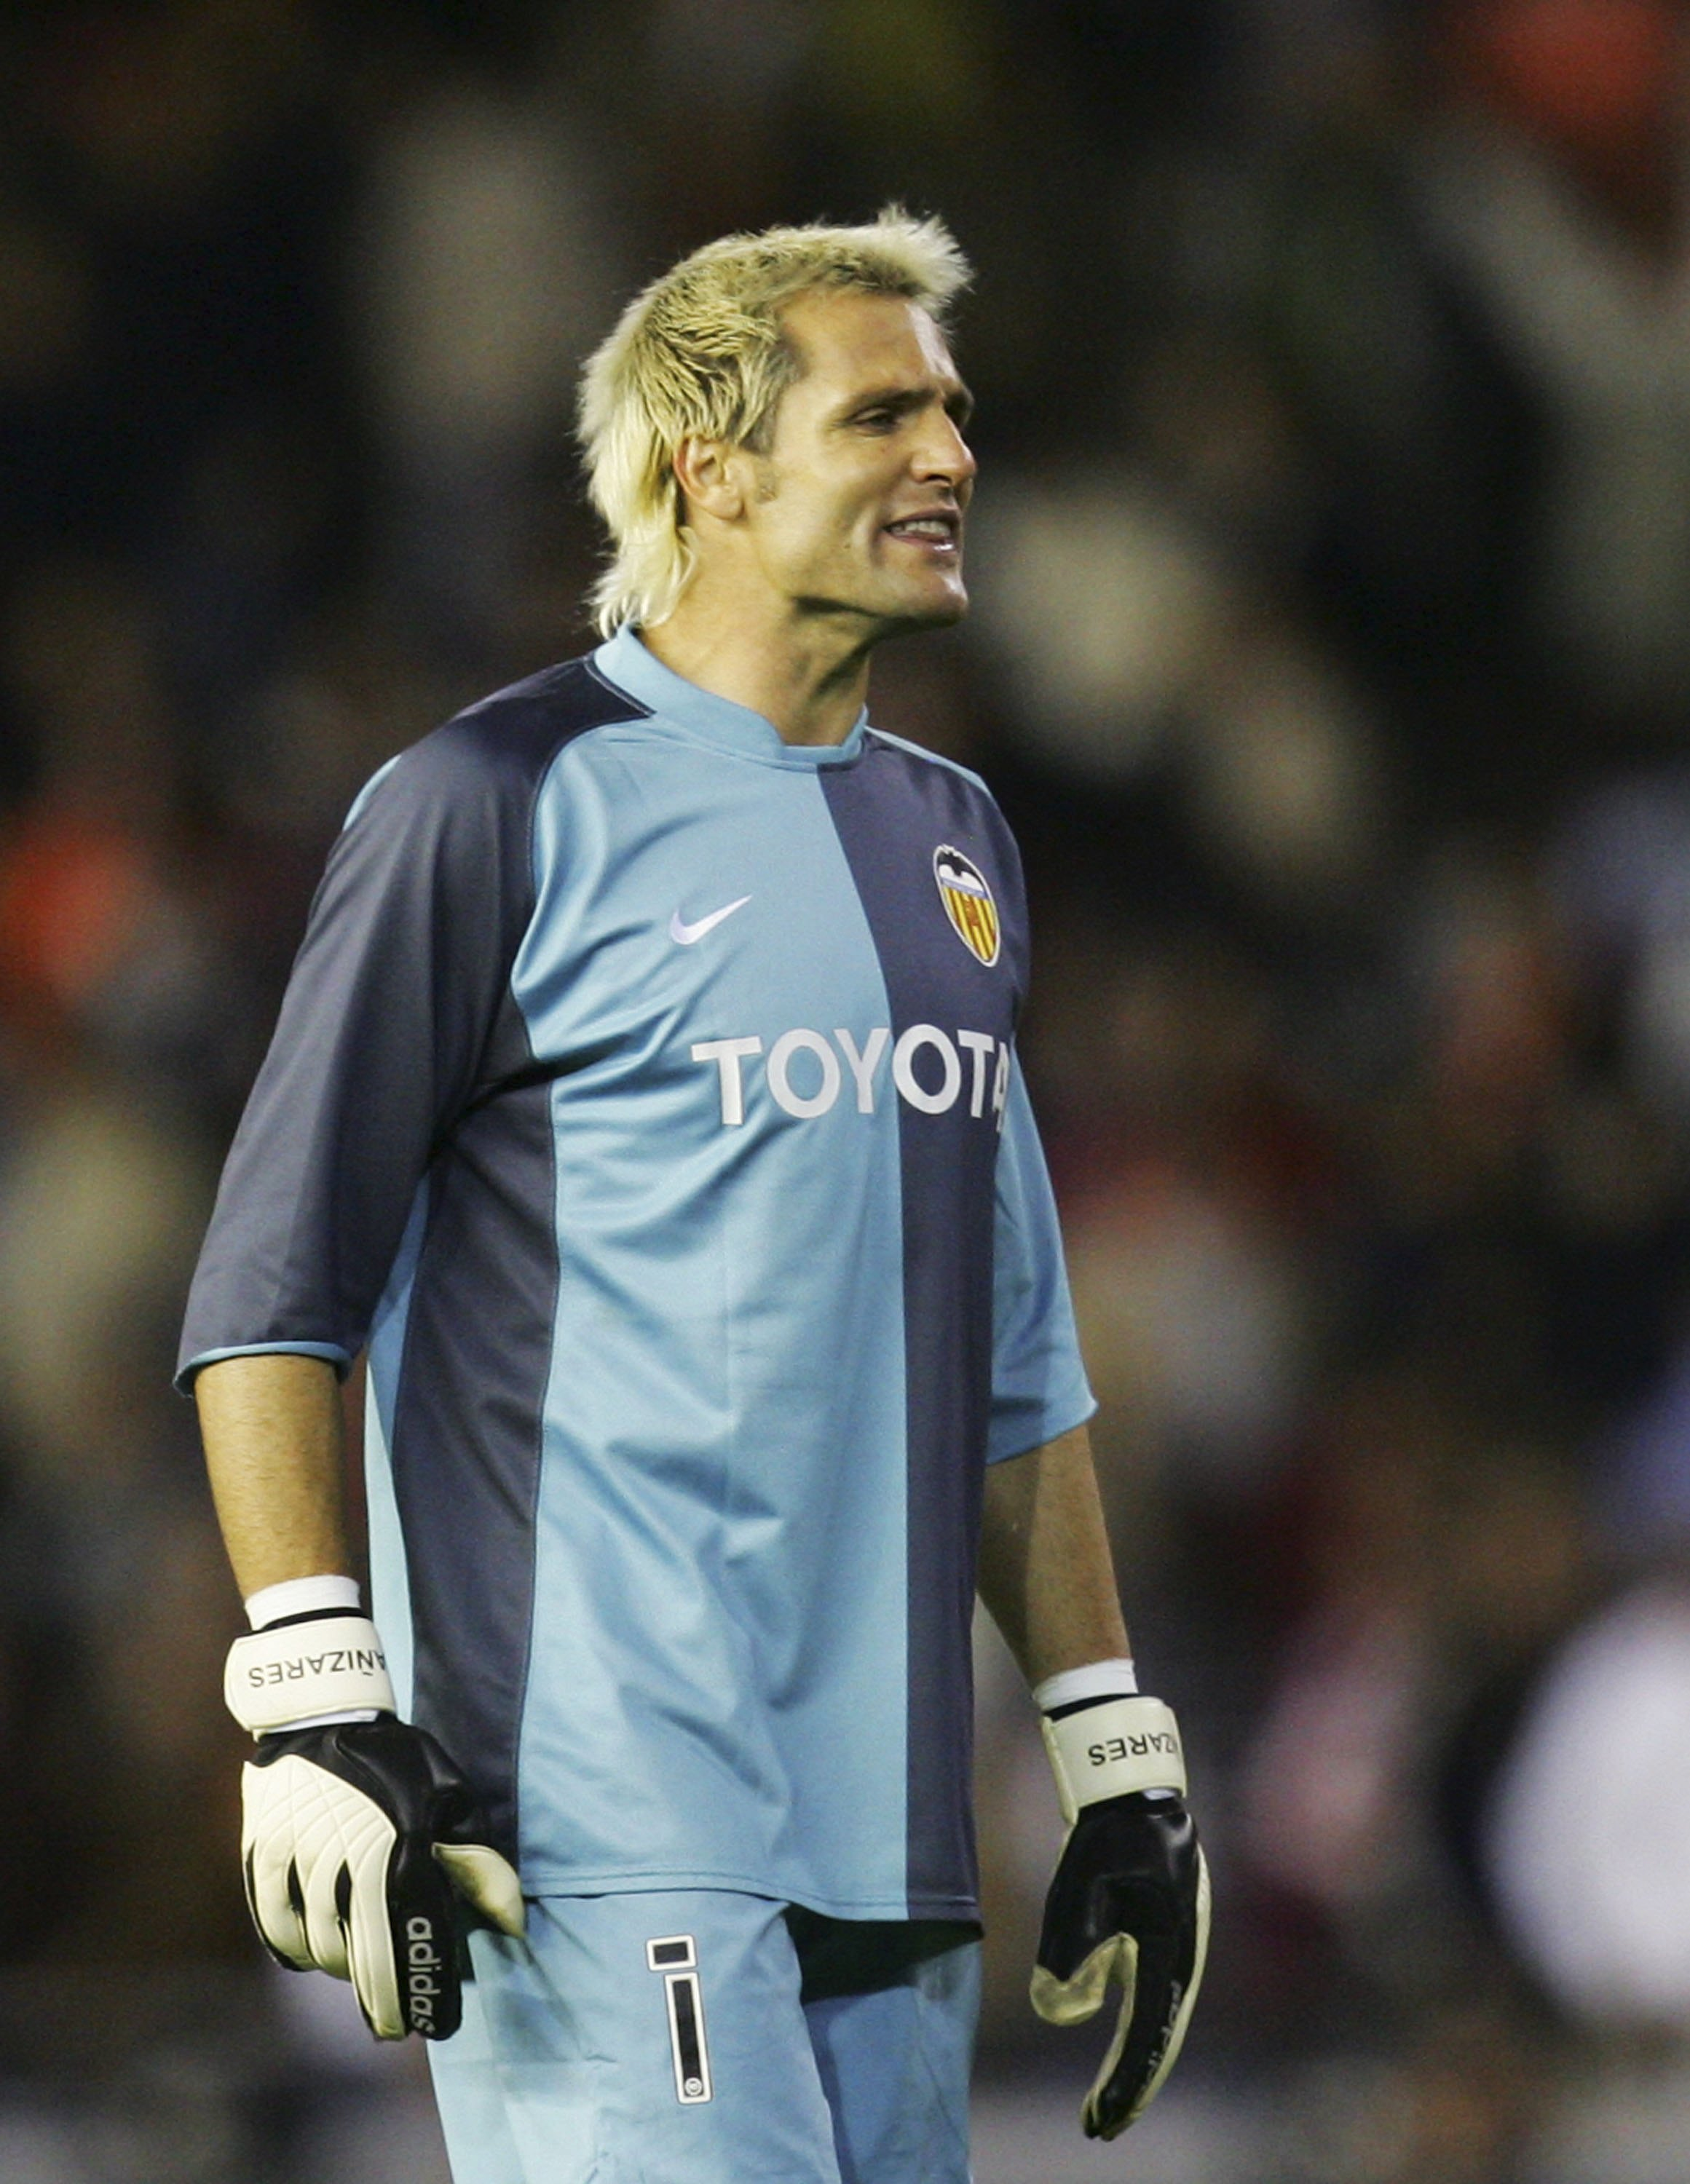 VALENCIA, SPAIN - NOVEMBER 26: Santiago Canizares of Valencia reacts after his side lost 1-0 to Real Madrid during their La Liga match between Valencia and Real Madrid at the Mestalla stadium on November 26, 2006 in Valencia, Spain.  (Photo by Denis Doyle